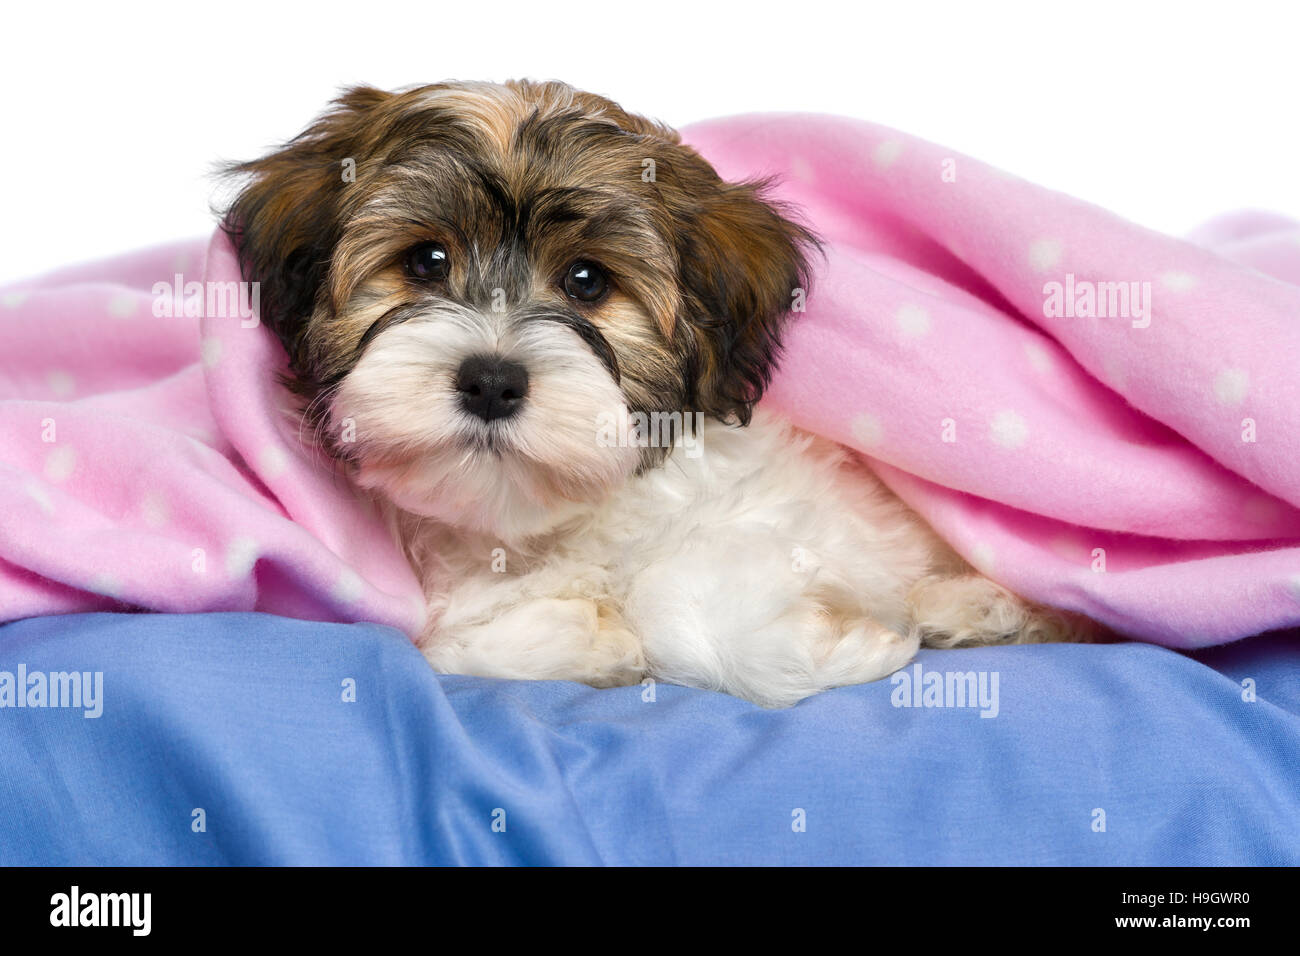 Cute little tricolor Havanese puppy dog is lying on a bed under a pink blanket - Stock Image